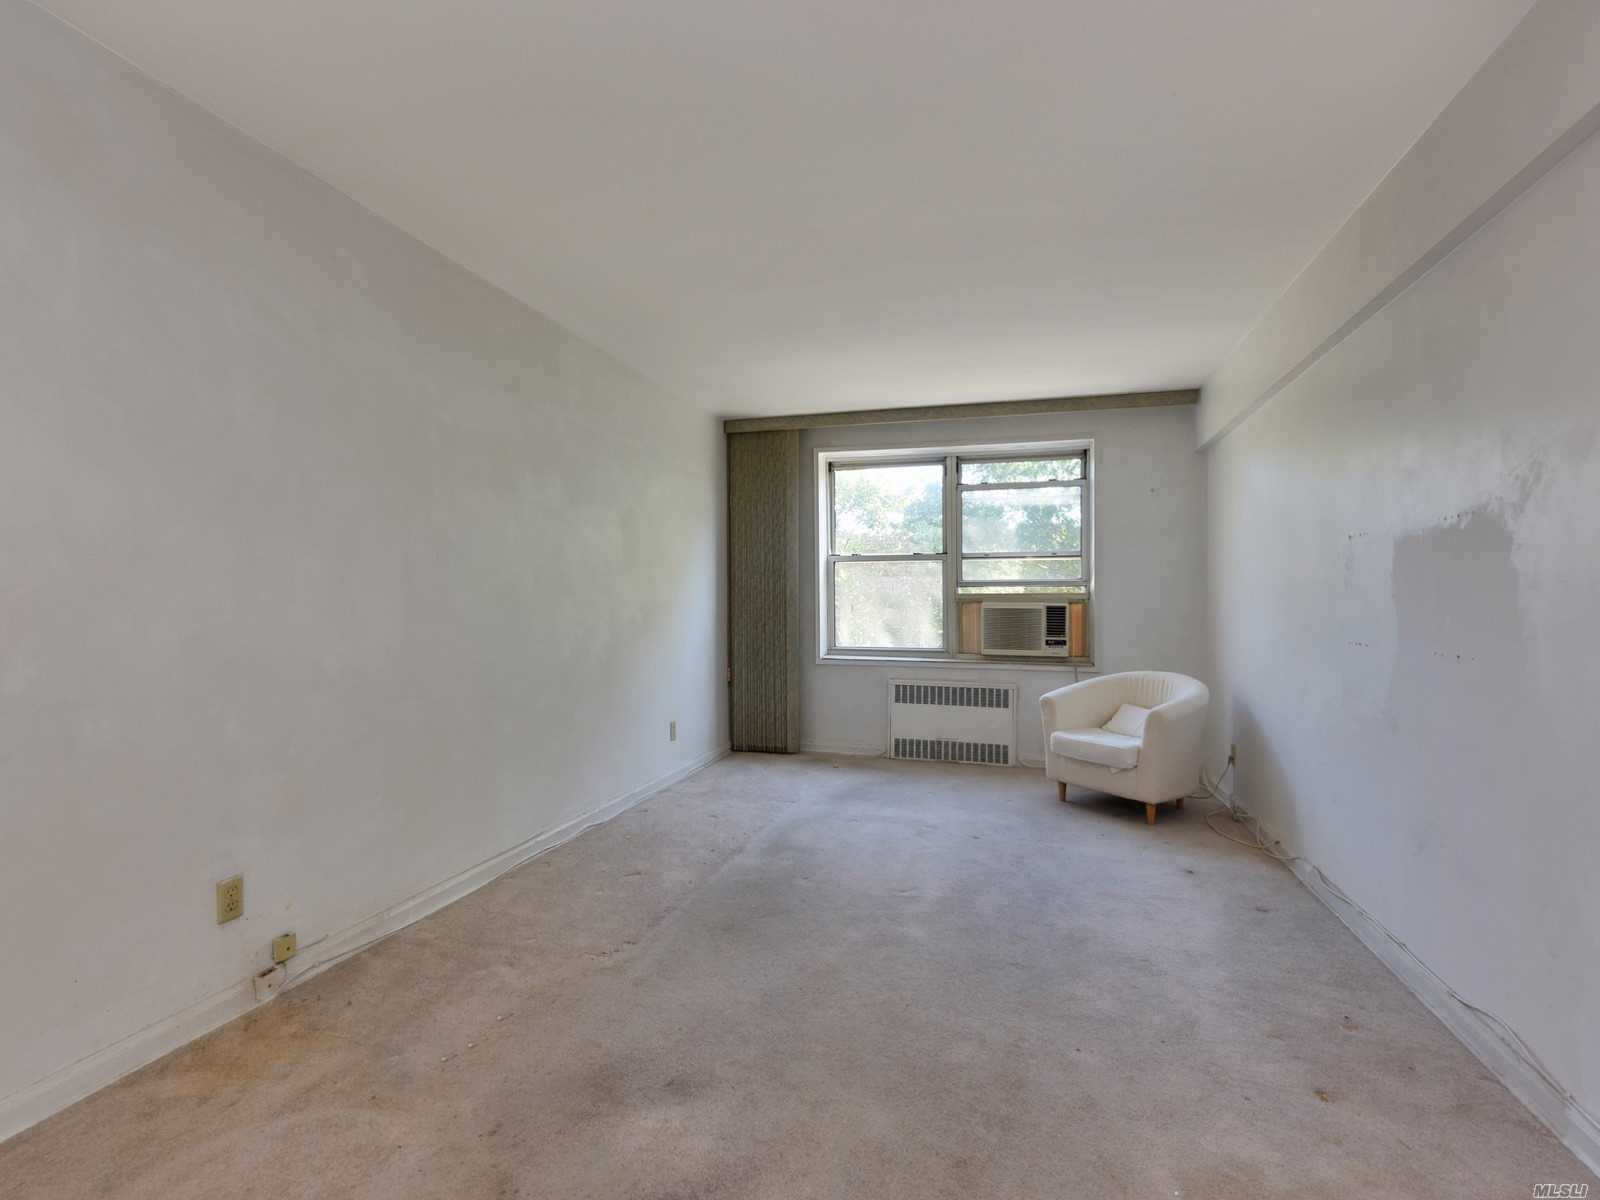 26-25 Union St 11354 - One of Flushing Homes for Sale